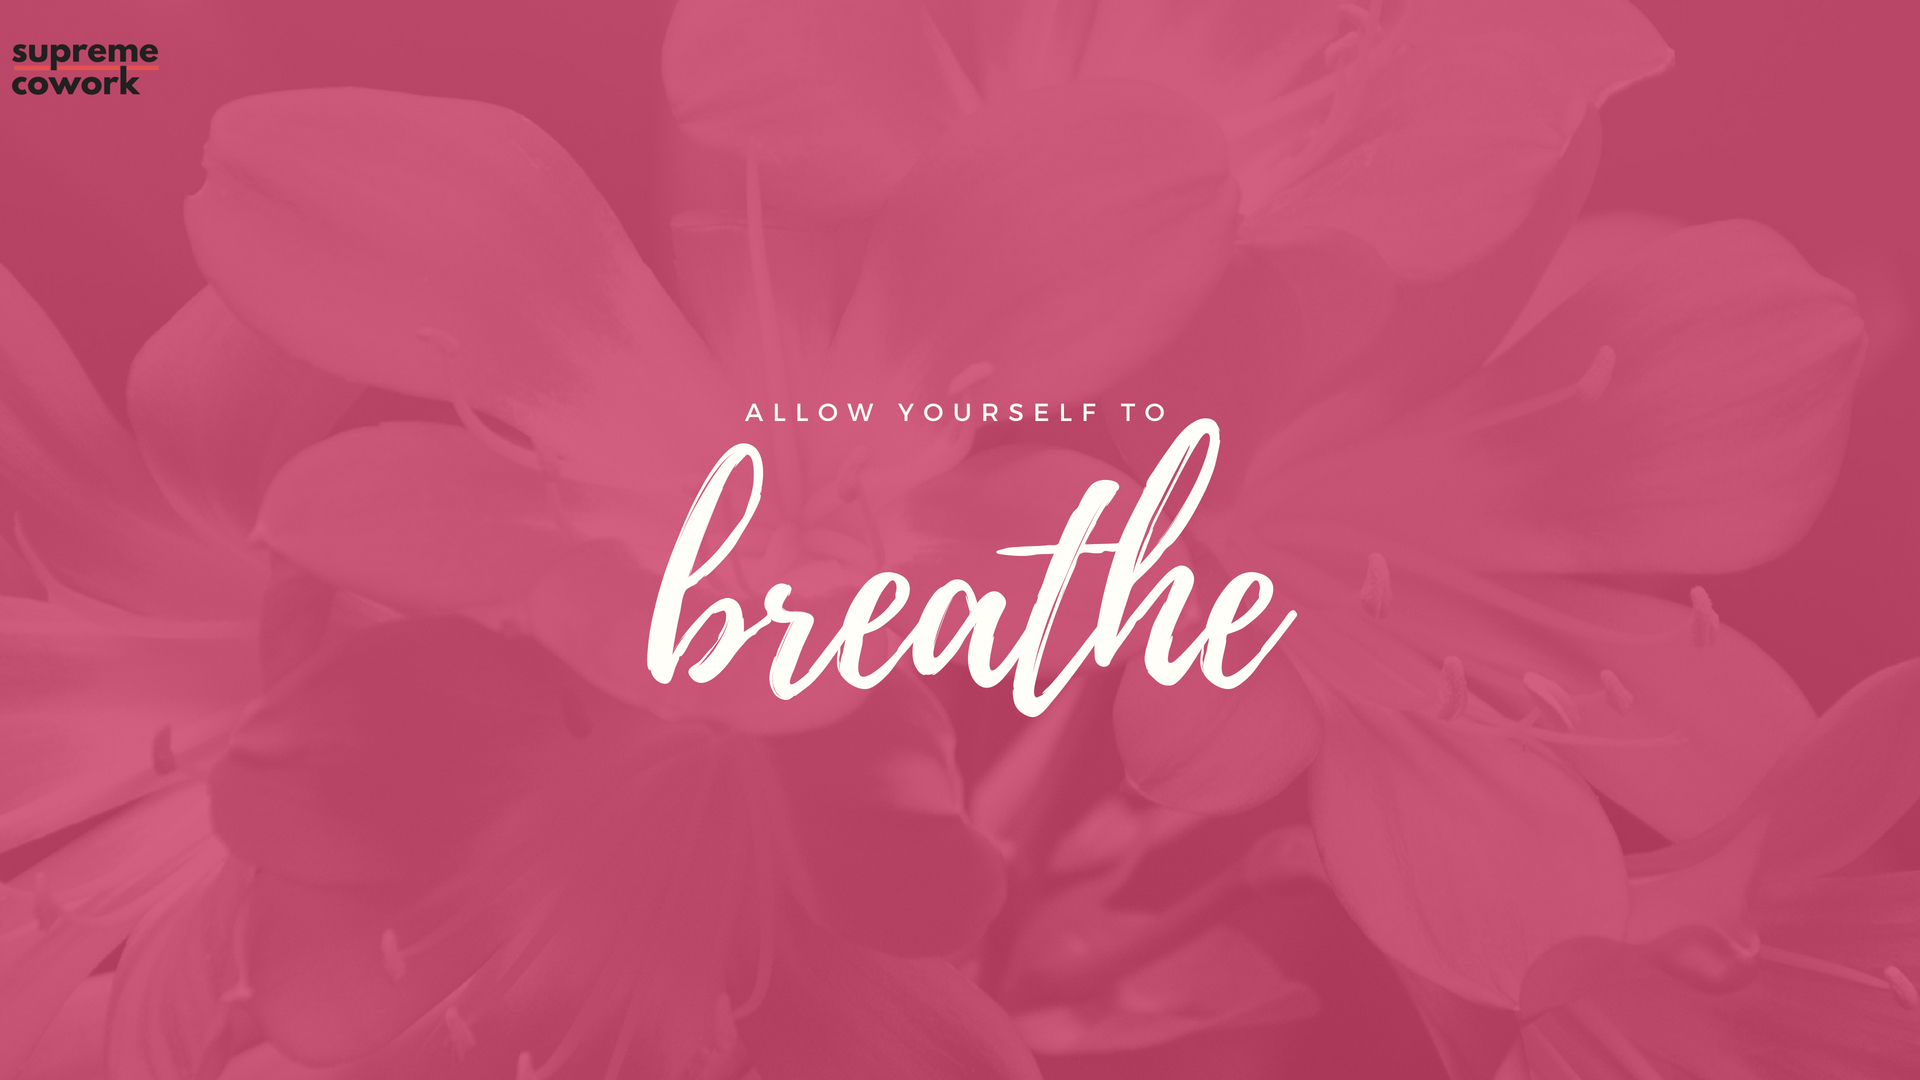 Free Inspirational Wallpapers Download Free Motivational Calligraphy 1920x1080 Wallpaper Teahub Io